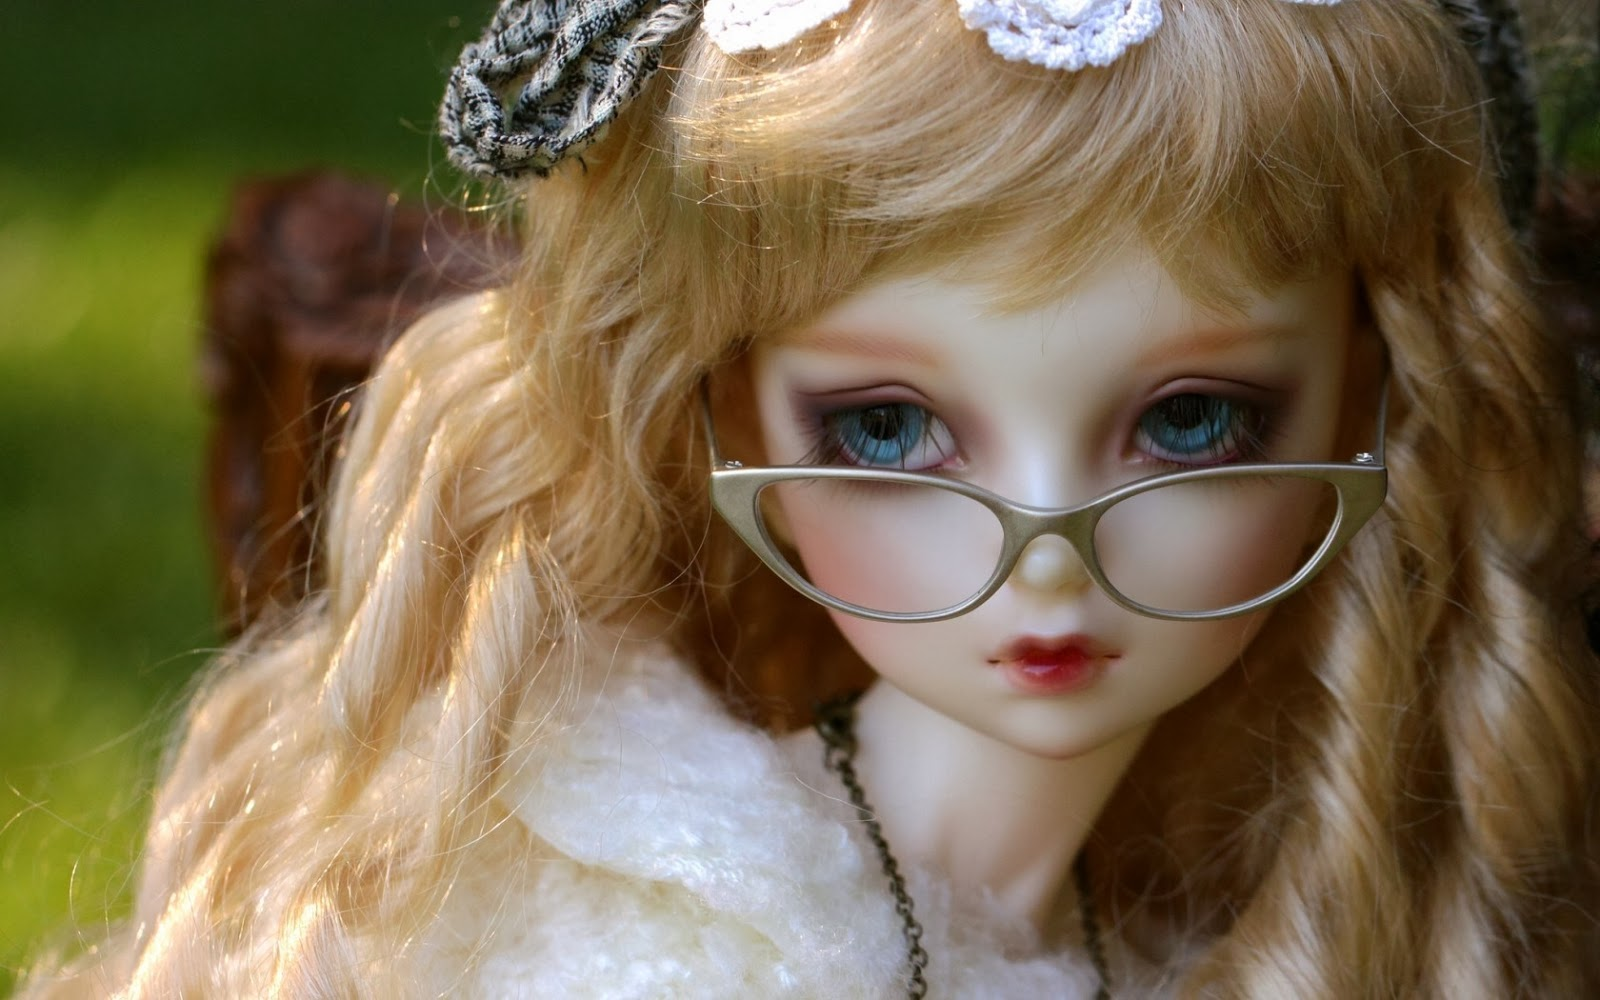 Download Top 80 Best Beautiful Cute Barbie Doll HD Wallpapers Images ...